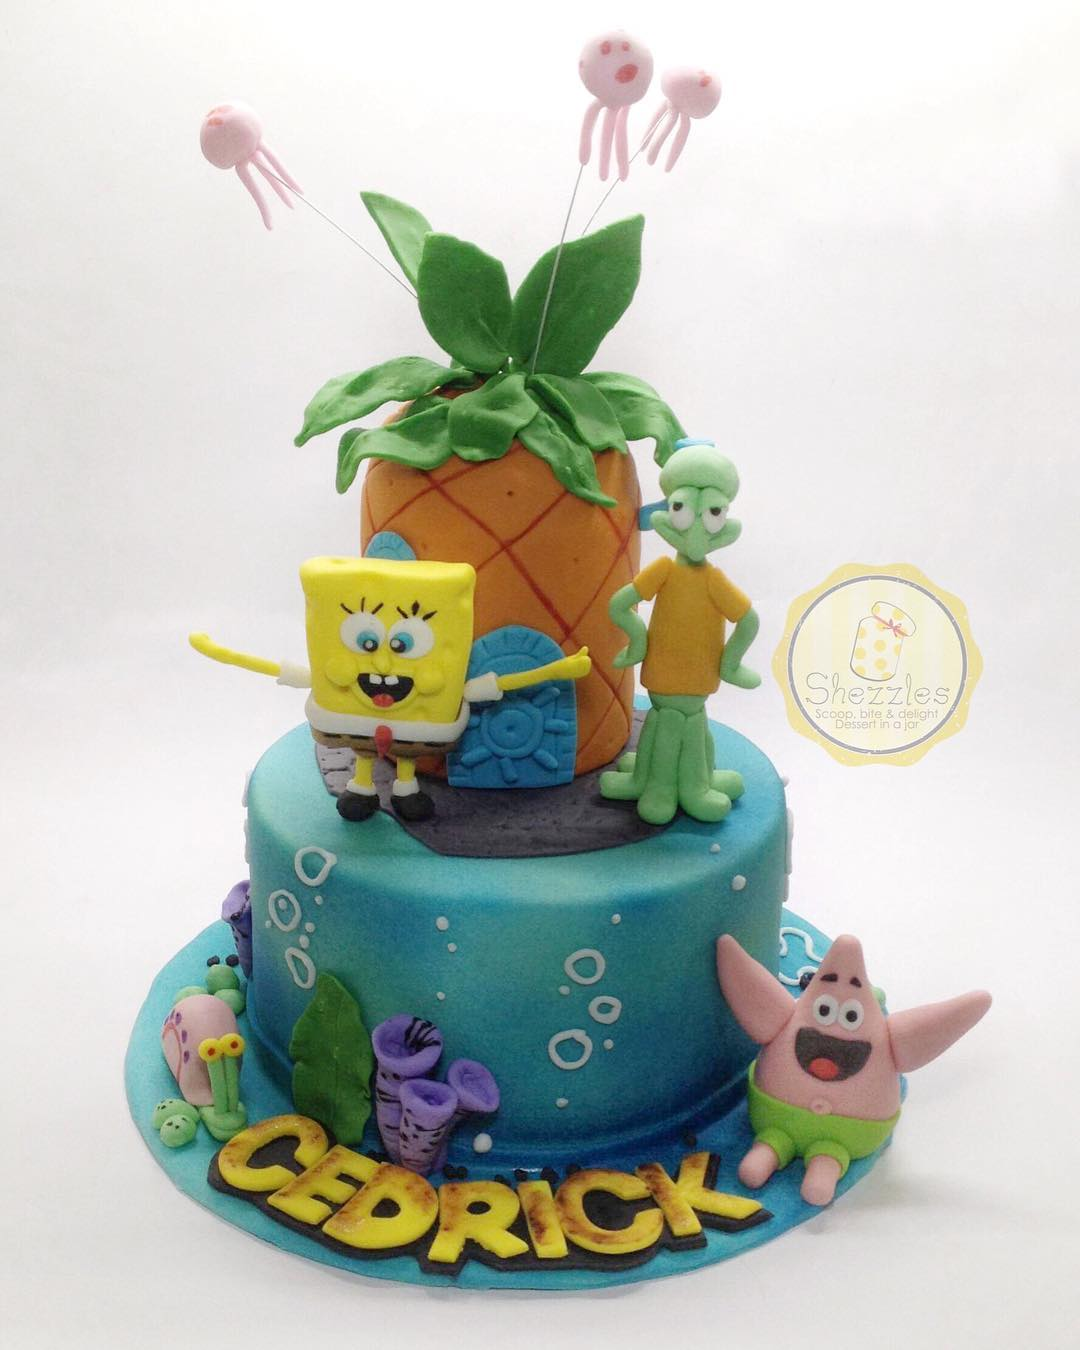 Swell Shezzles Cakes And Pastries Spongebob Squarepants Cake Funny Birthday Cards Online Alyptdamsfinfo